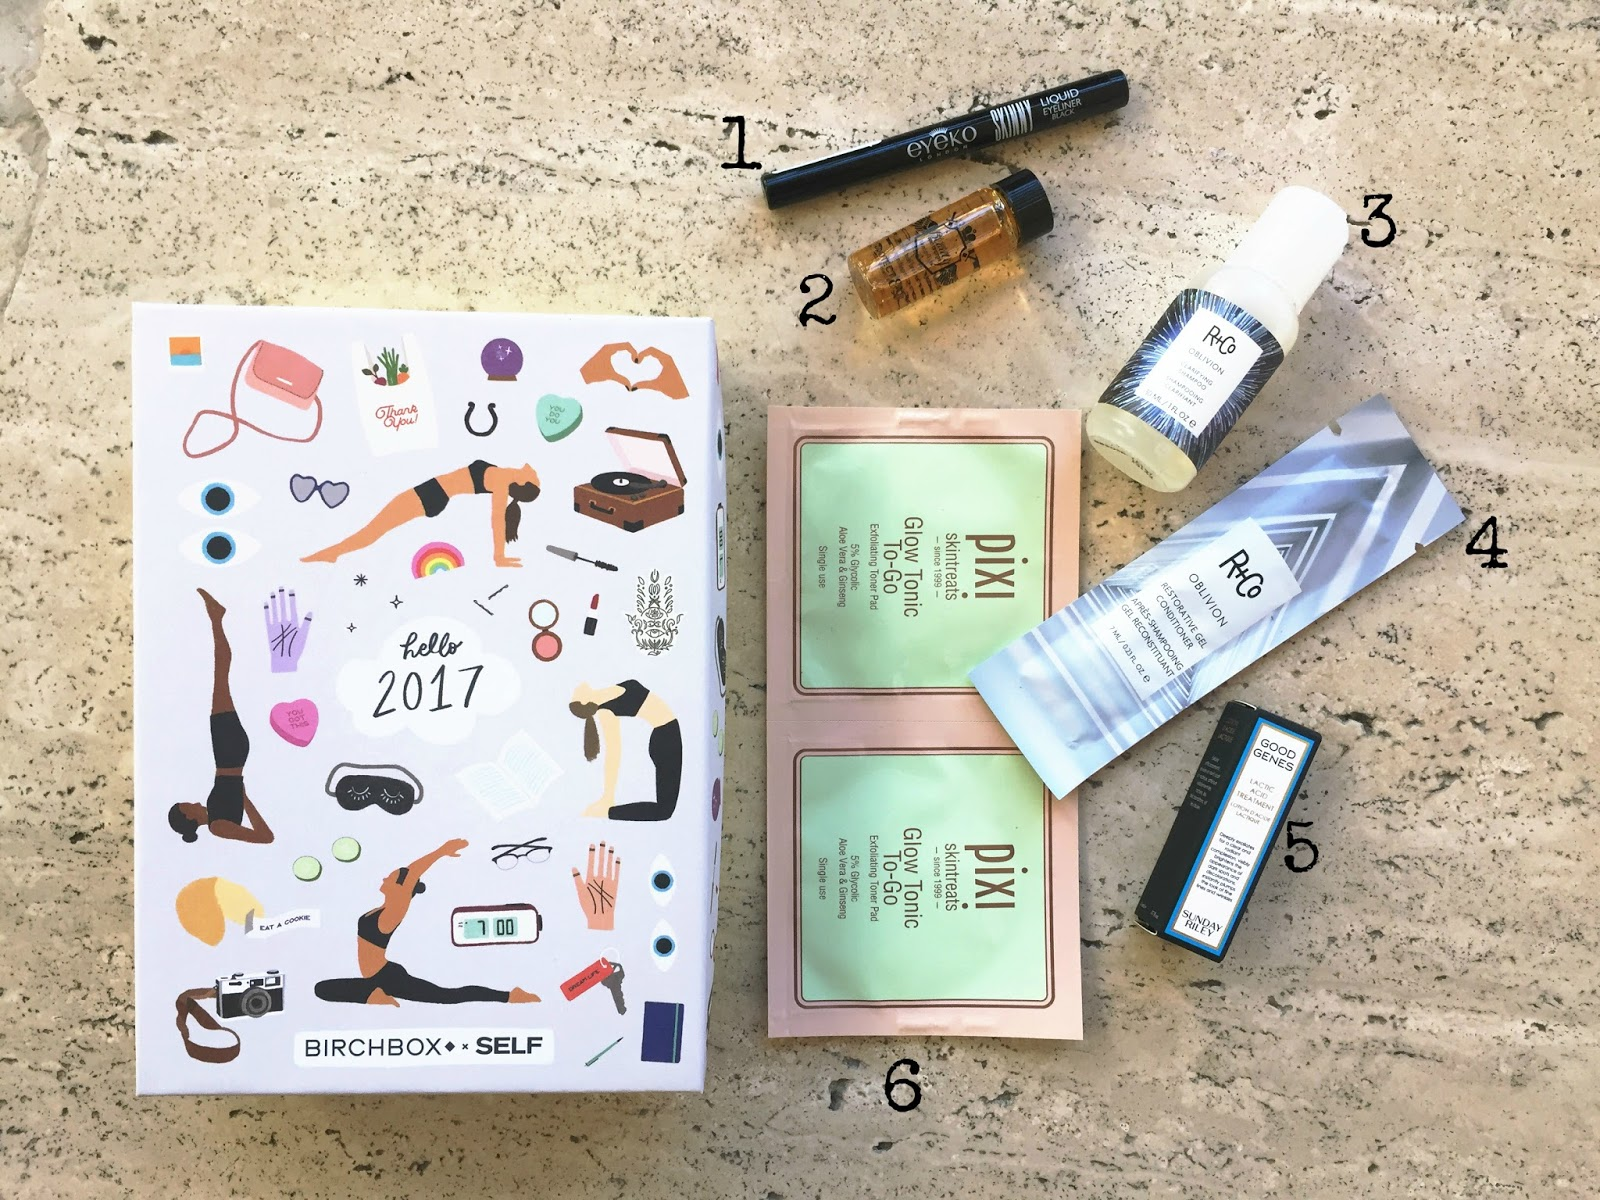 January 2017 Birchbox